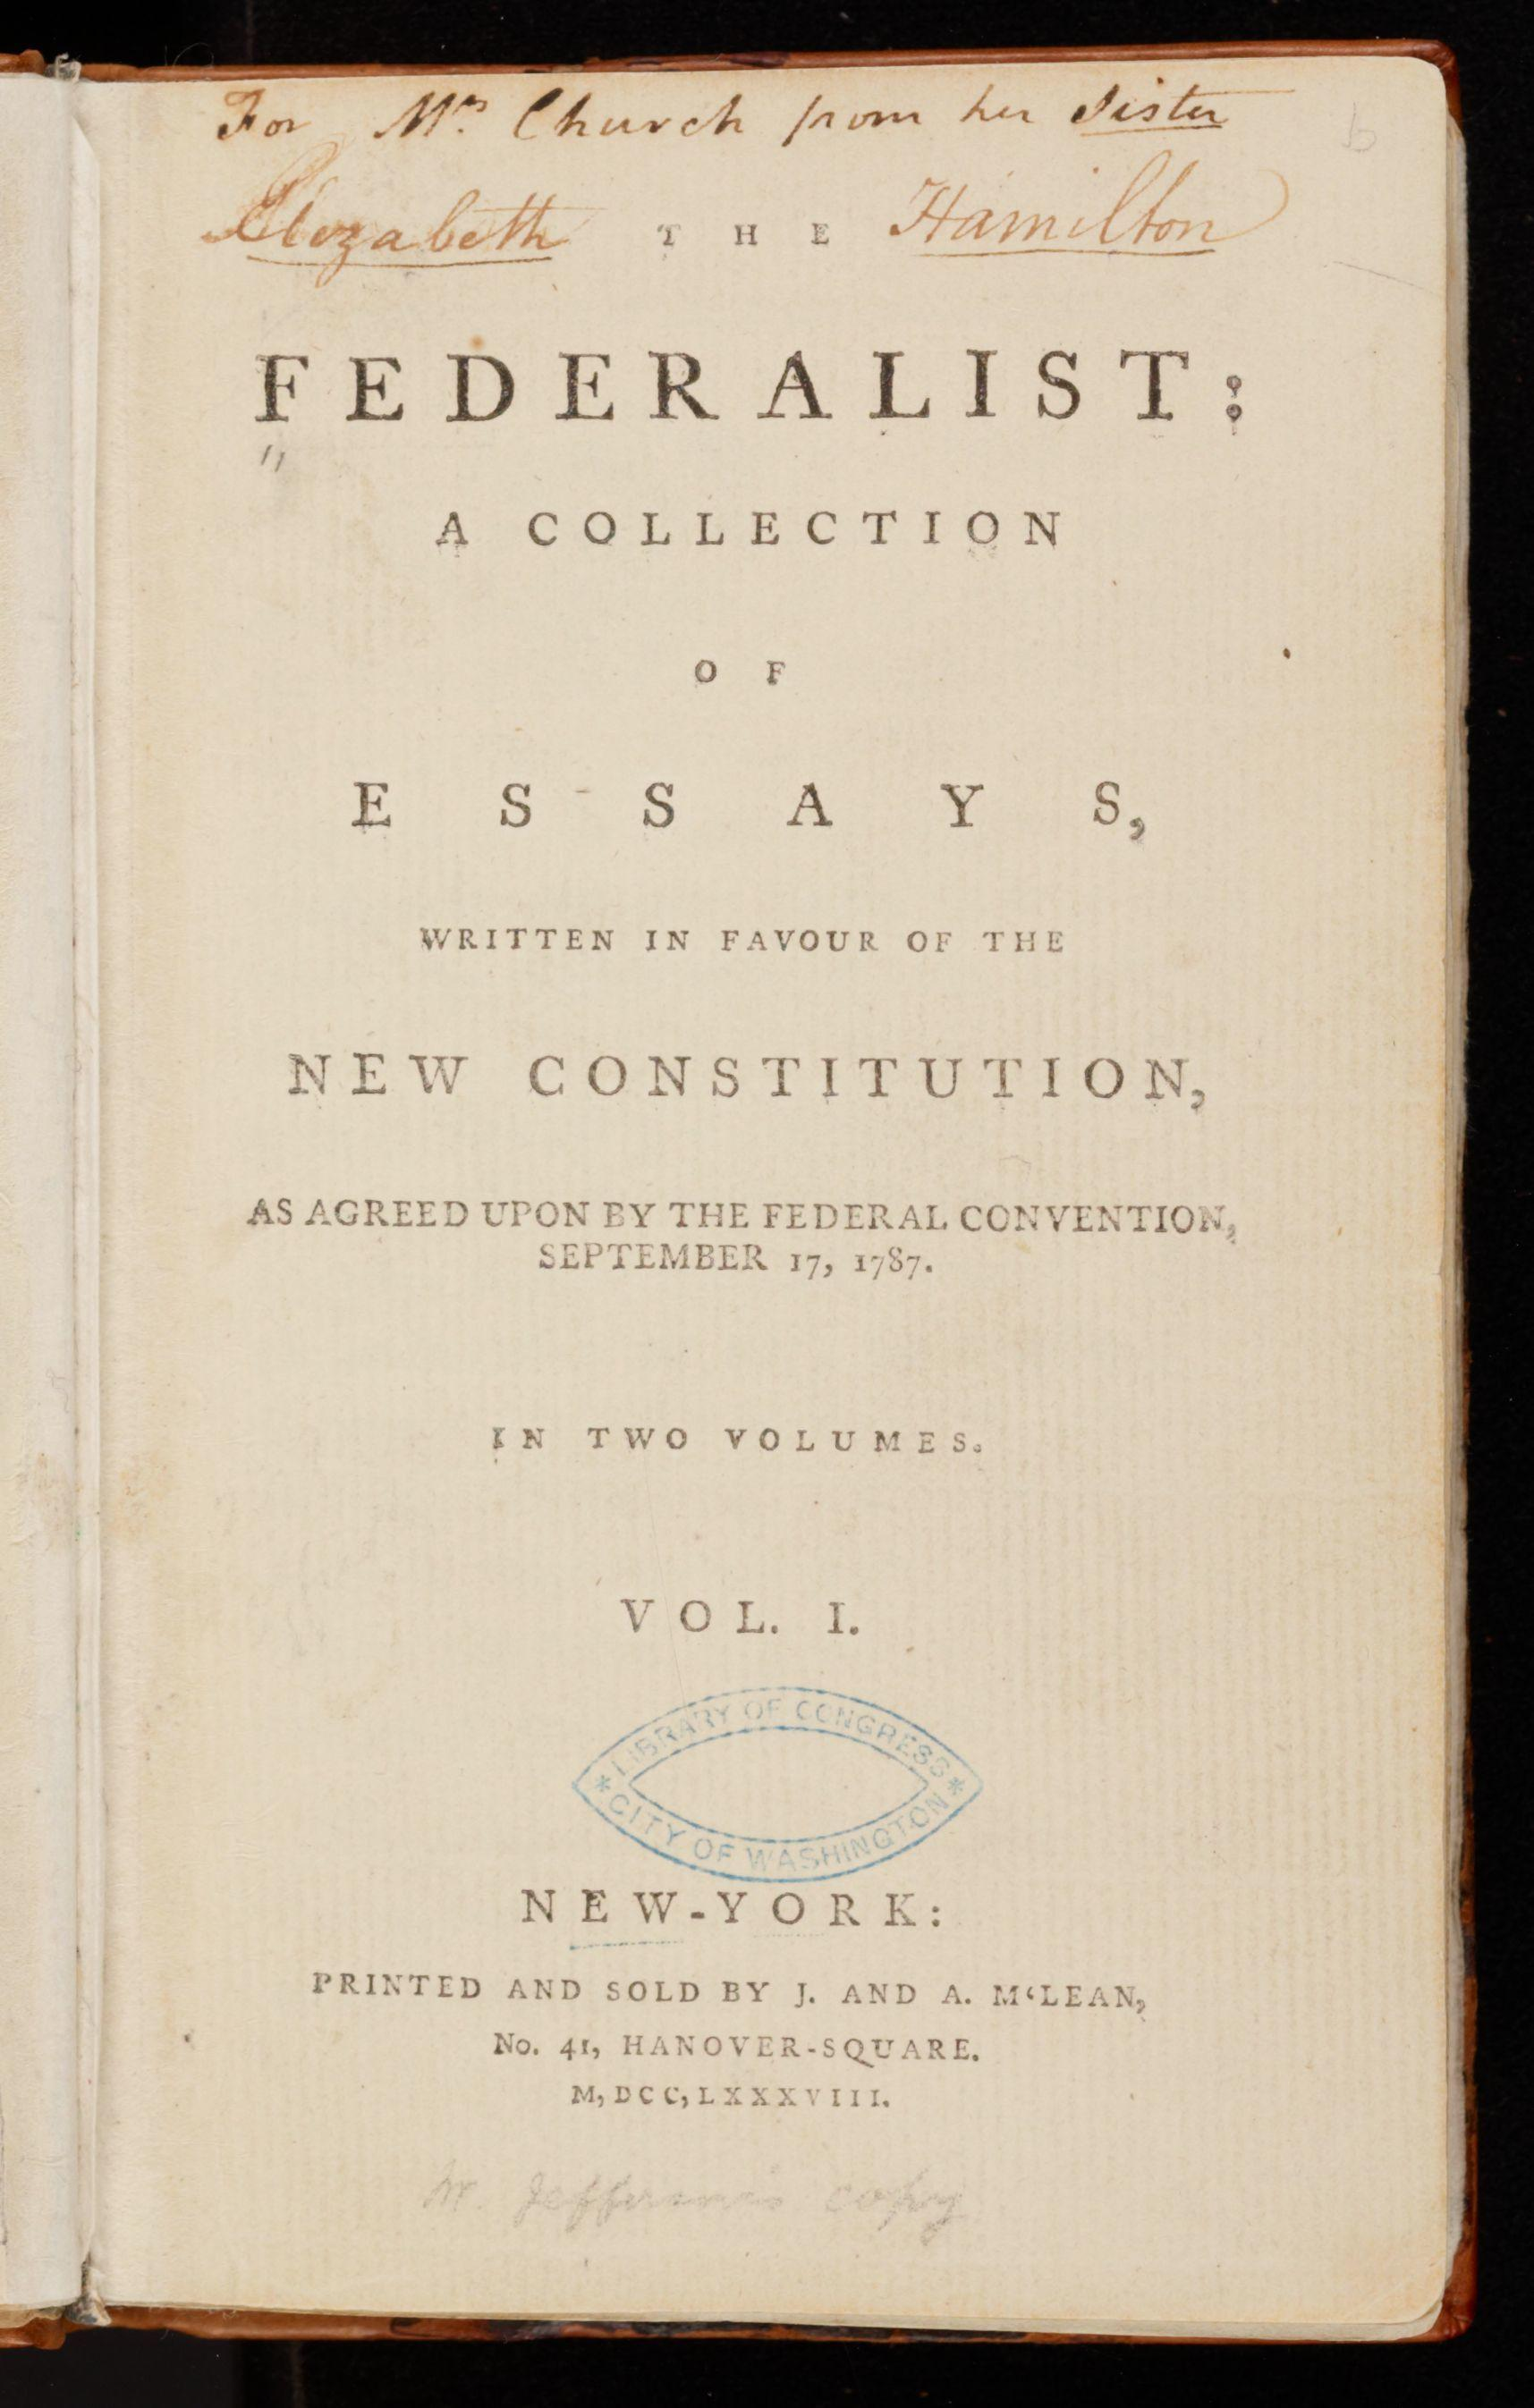 The federalist : a collection of essays, written in favour of the new Constitution, as agreed upon by the Federal Convention, September 17, 1787, Library of Congress